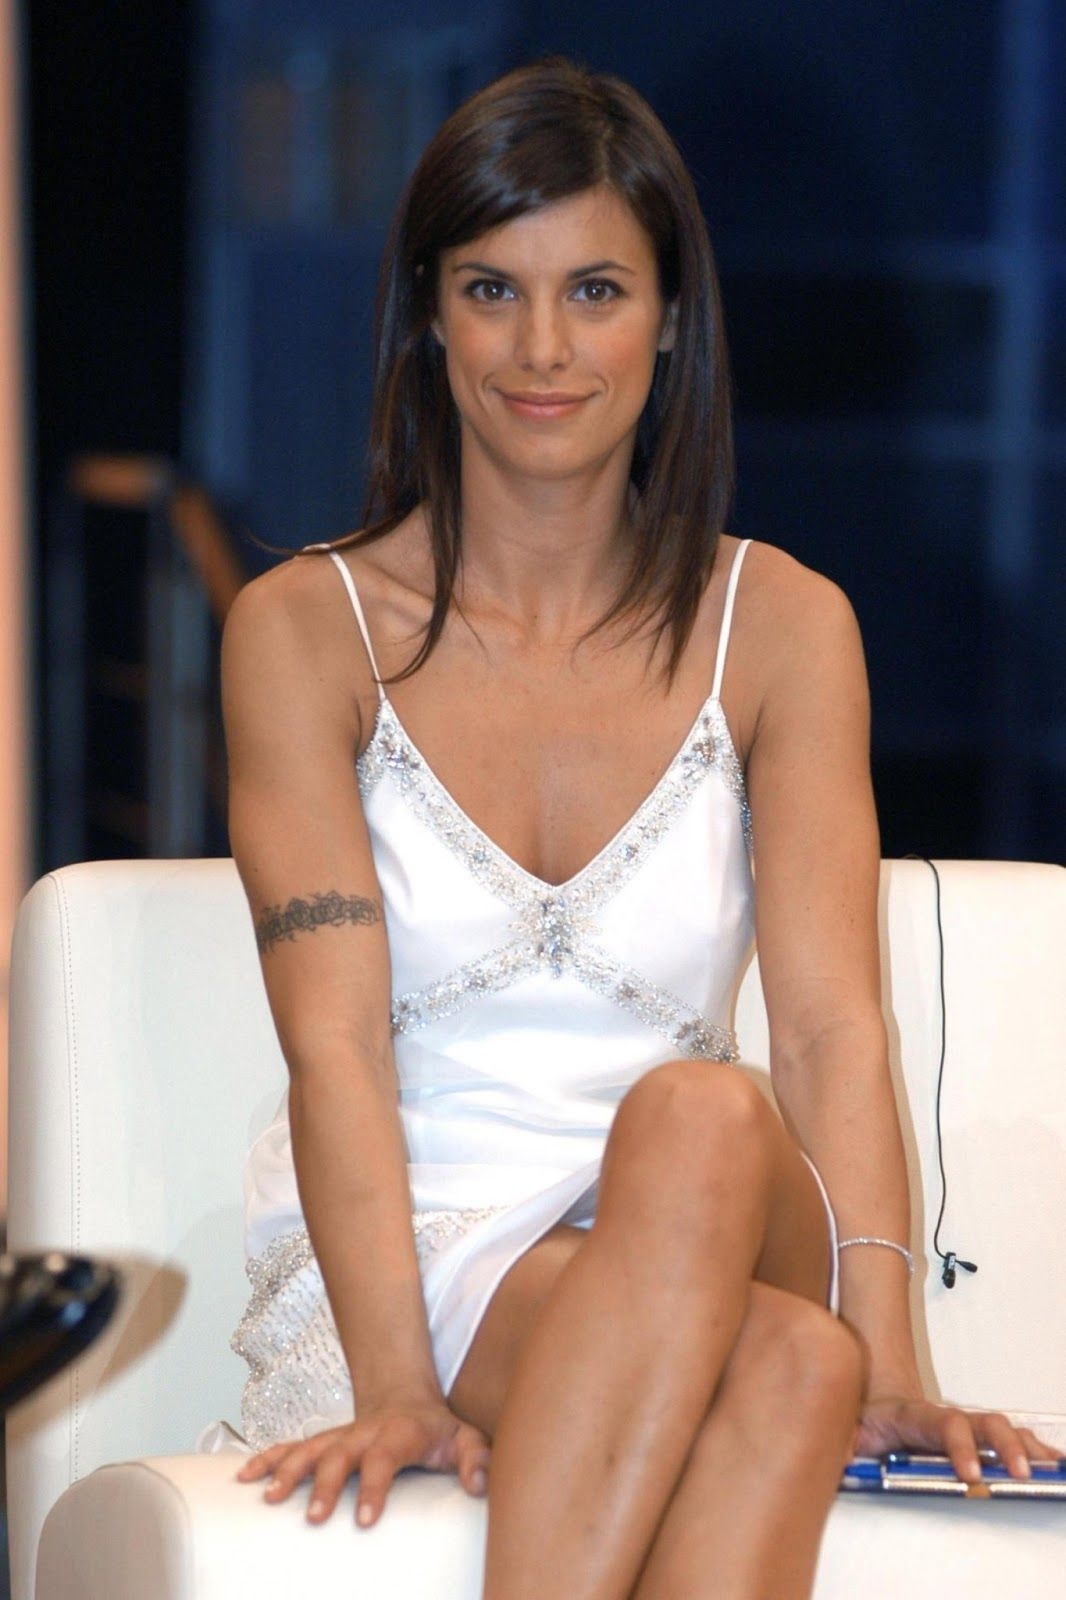 Young Elisabetta Canalis nudes (38 foto and video), Sexy, Paparazzi, Feet, butt 2015